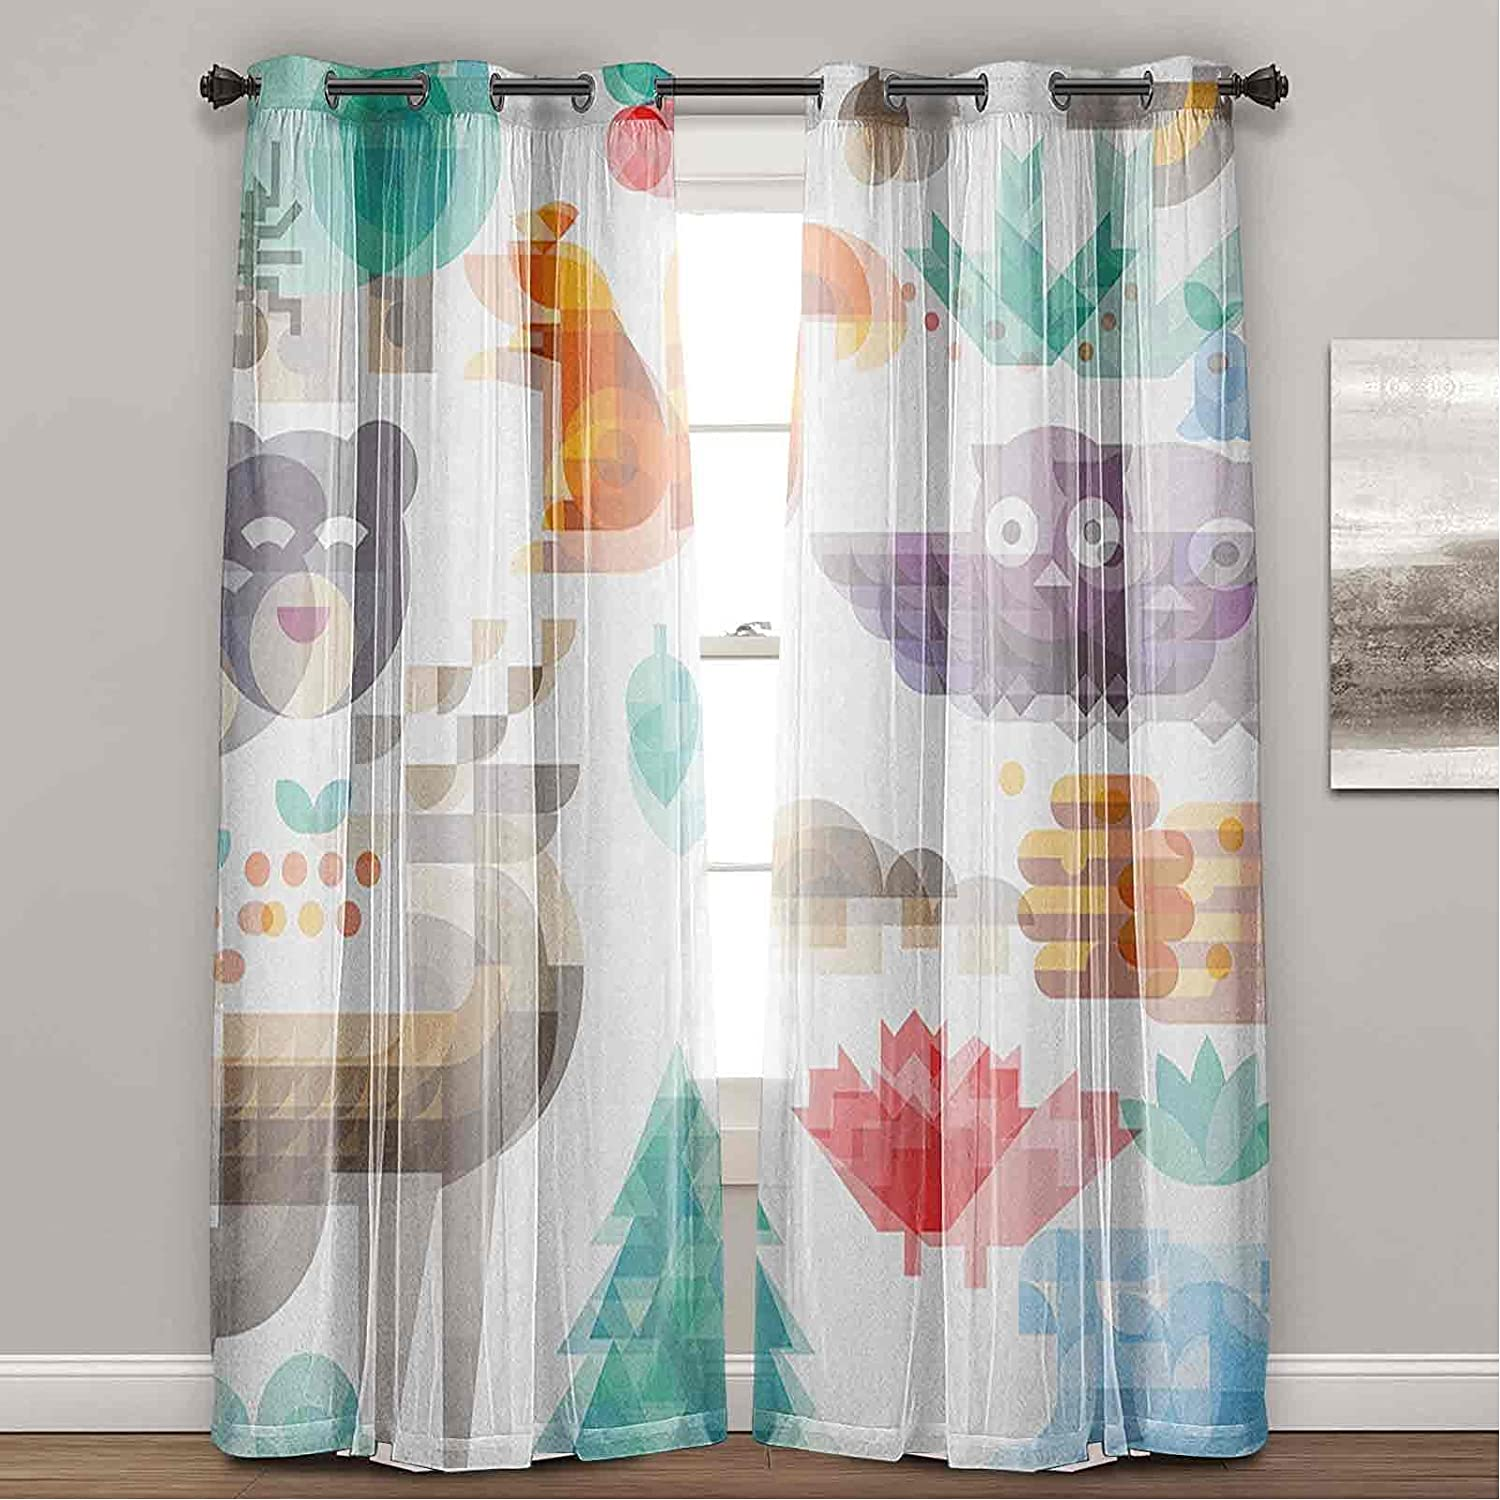 Kids 5 ☆ popular Bedroom Window Curtains Cute Cheerful Art OFFicial shop Poly Anima Style